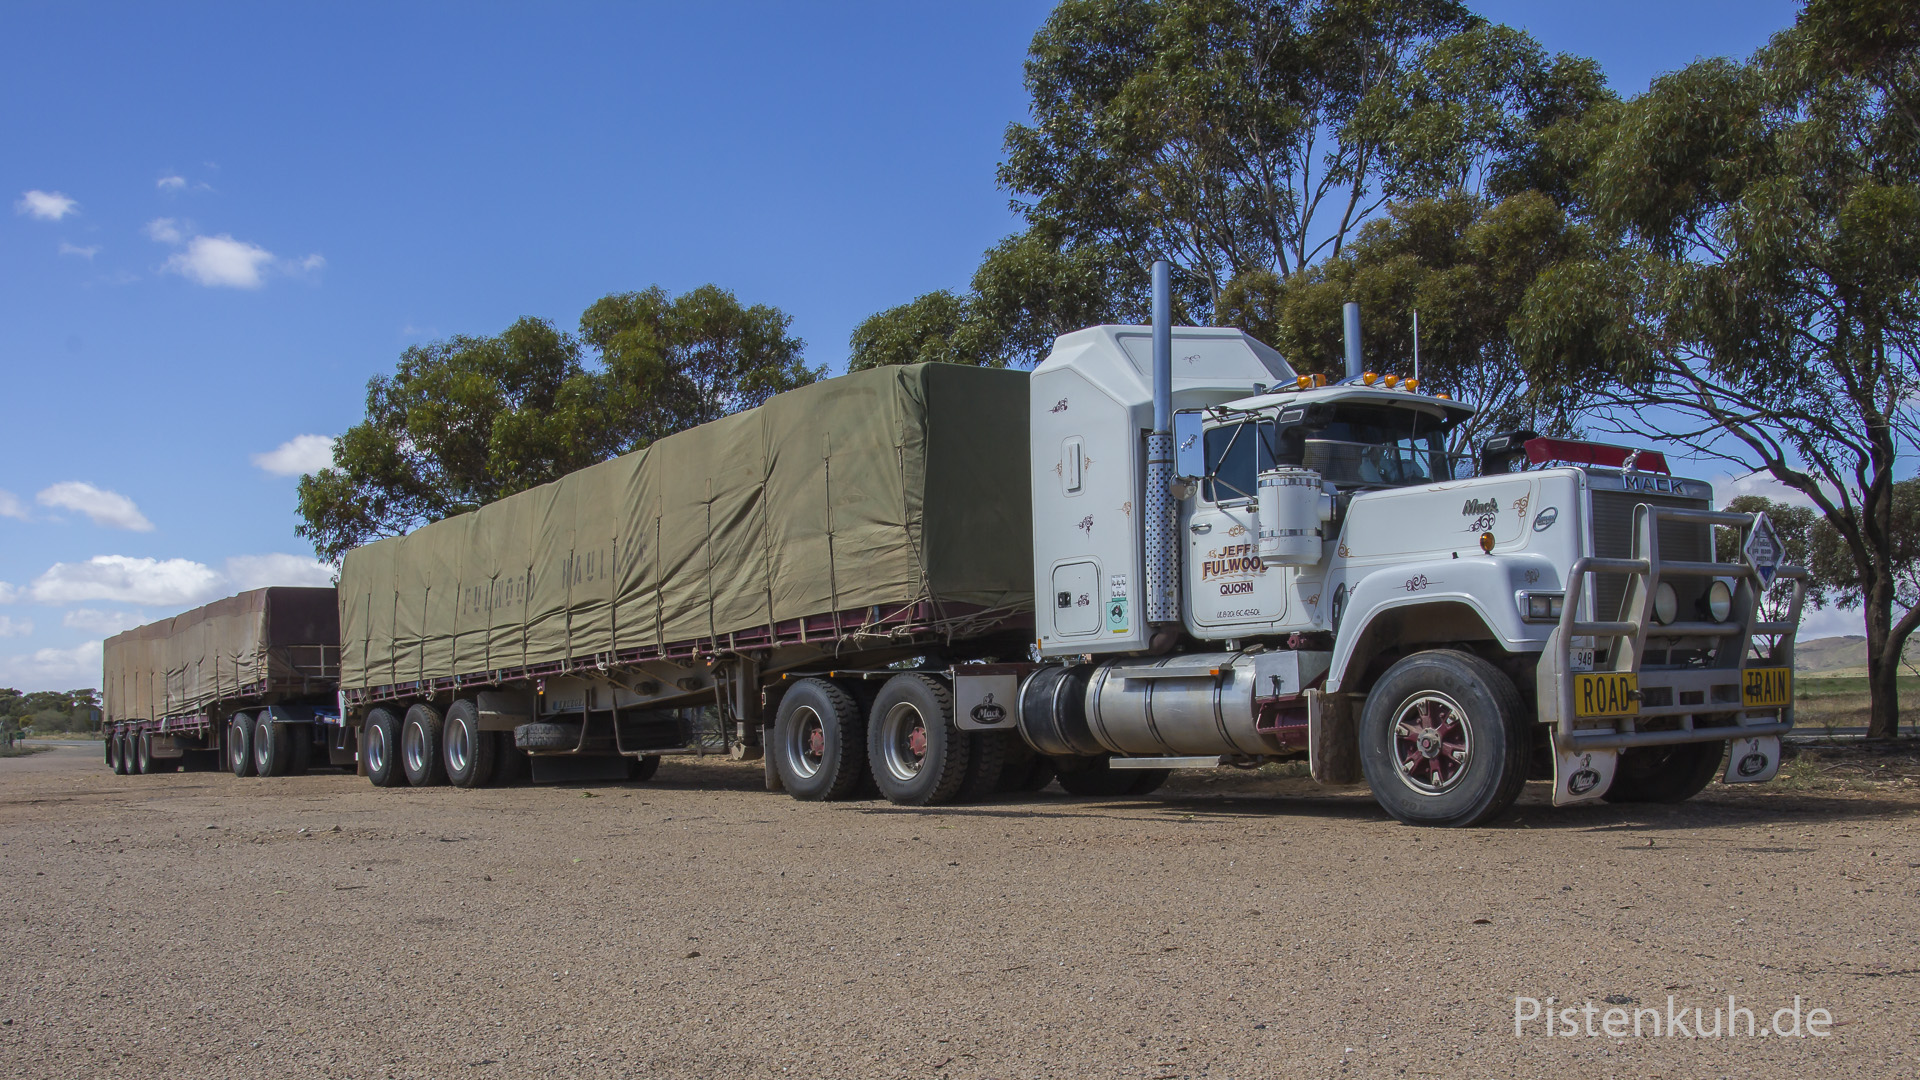 Double Roadtrains